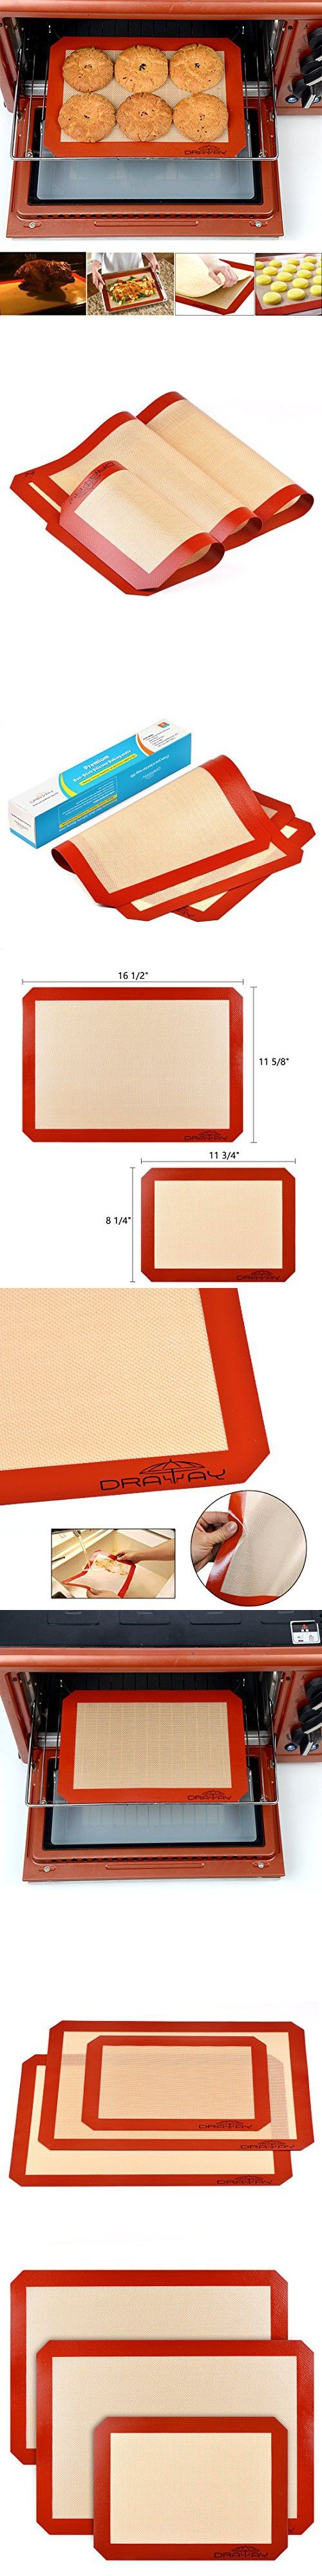 Silicon Mats for Baking, Set of 3 Non Stick Silicon Baking Mat 2 Large for Half Sheet Liners (16 1/2 inch x 11 5/8 inch) and 1 Quarter (11 3/4 Inch x 8 1/4 Inch) for Draway Heat Resistant Cookie Sheet